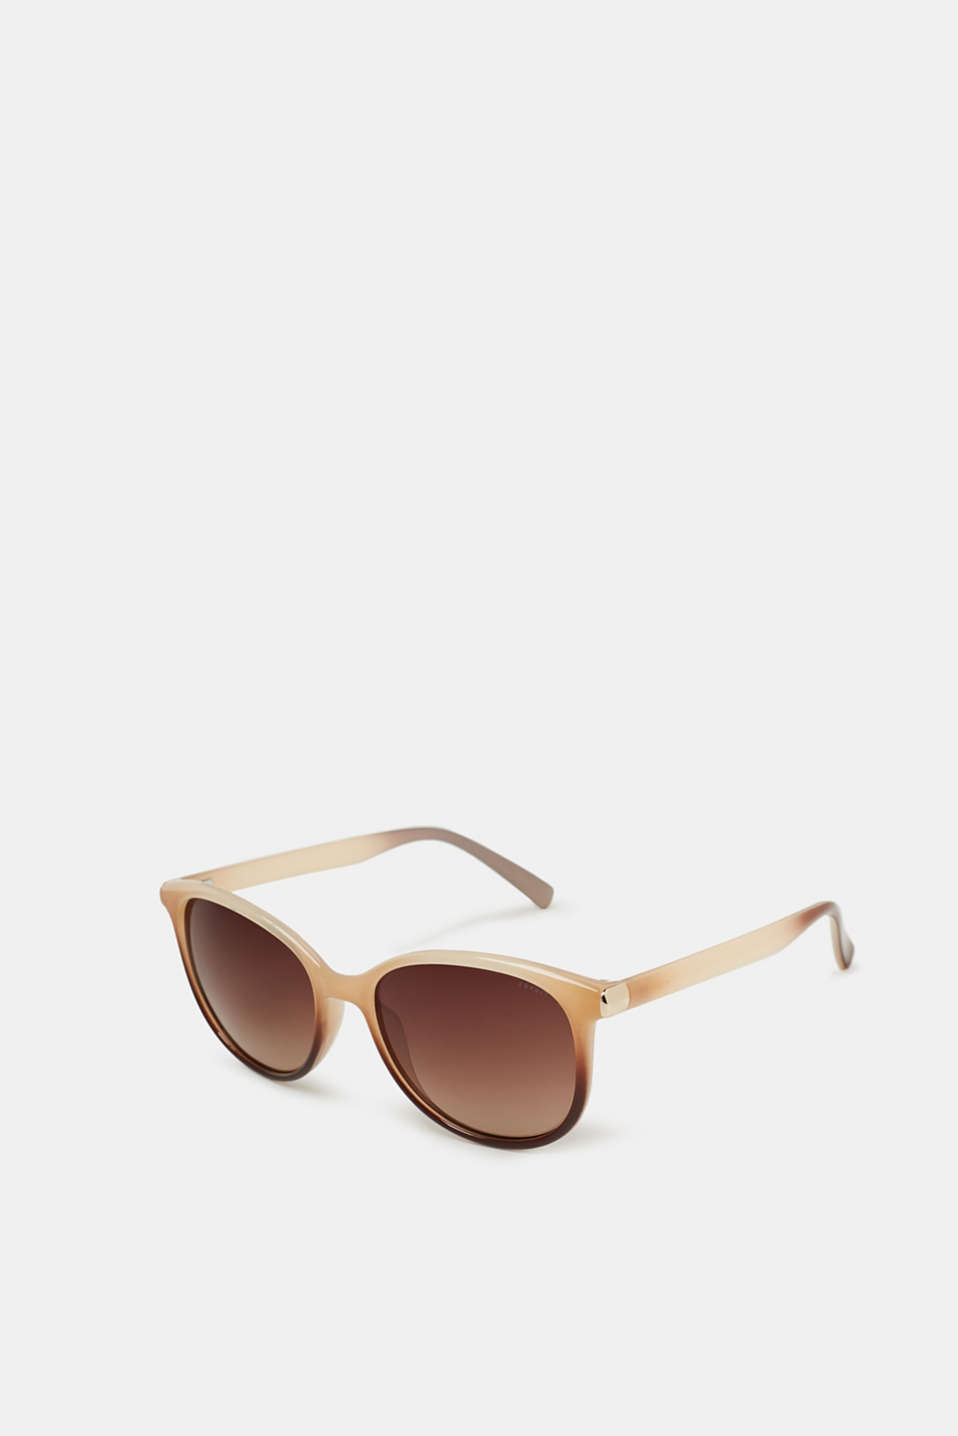 Esprit - Trendy, horn-effect sunglasses